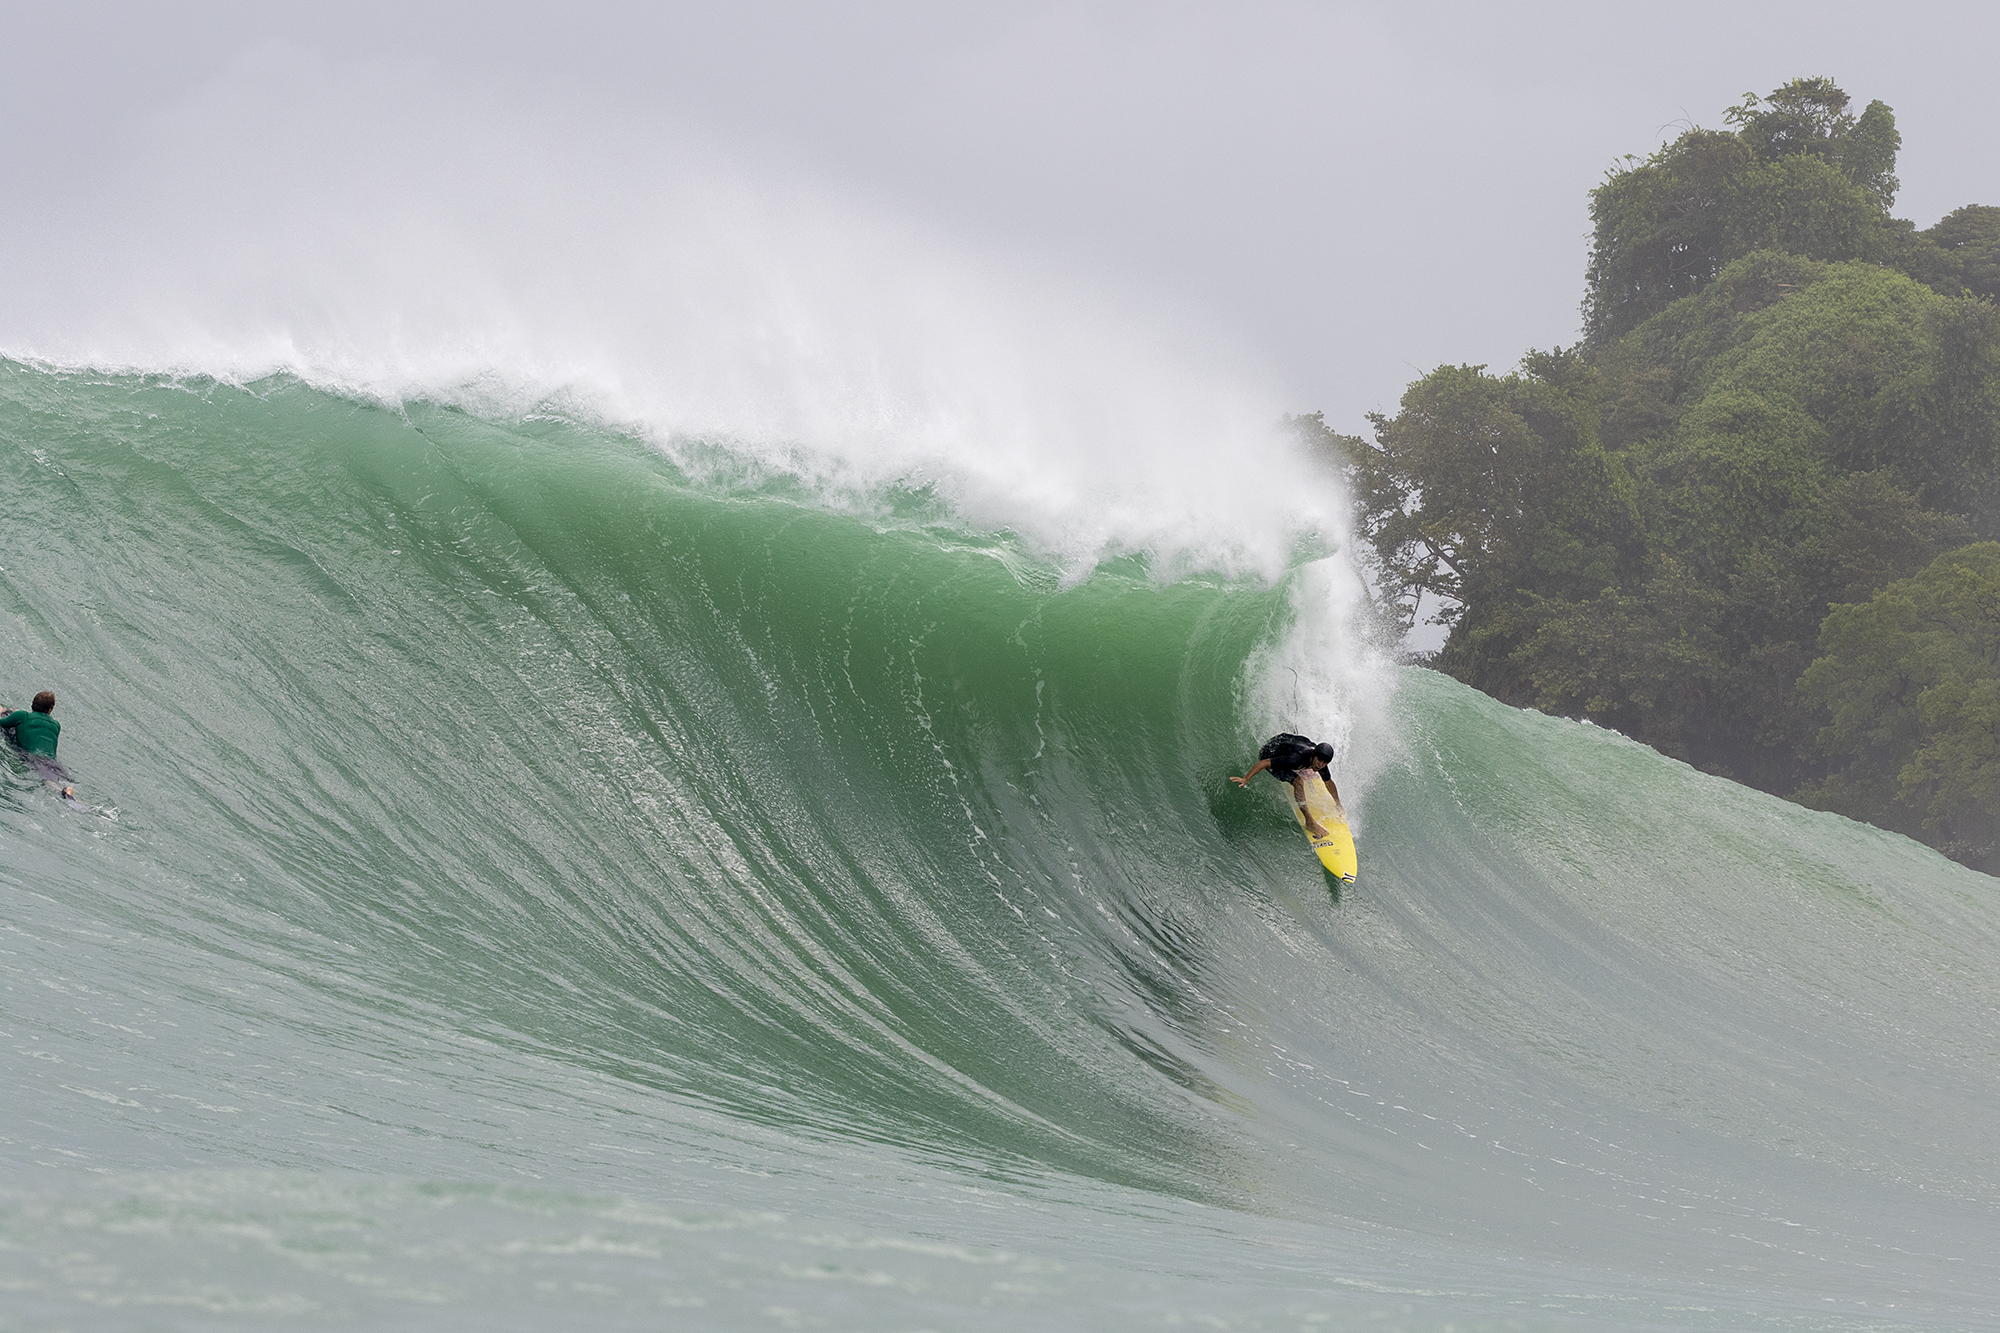 Panama, Bocas del Toro, Silverbacks, Luke Davis, Red Frog Bungalows, Koa Smith, Michael Dunphy, Andrew Jacobson, Travel,